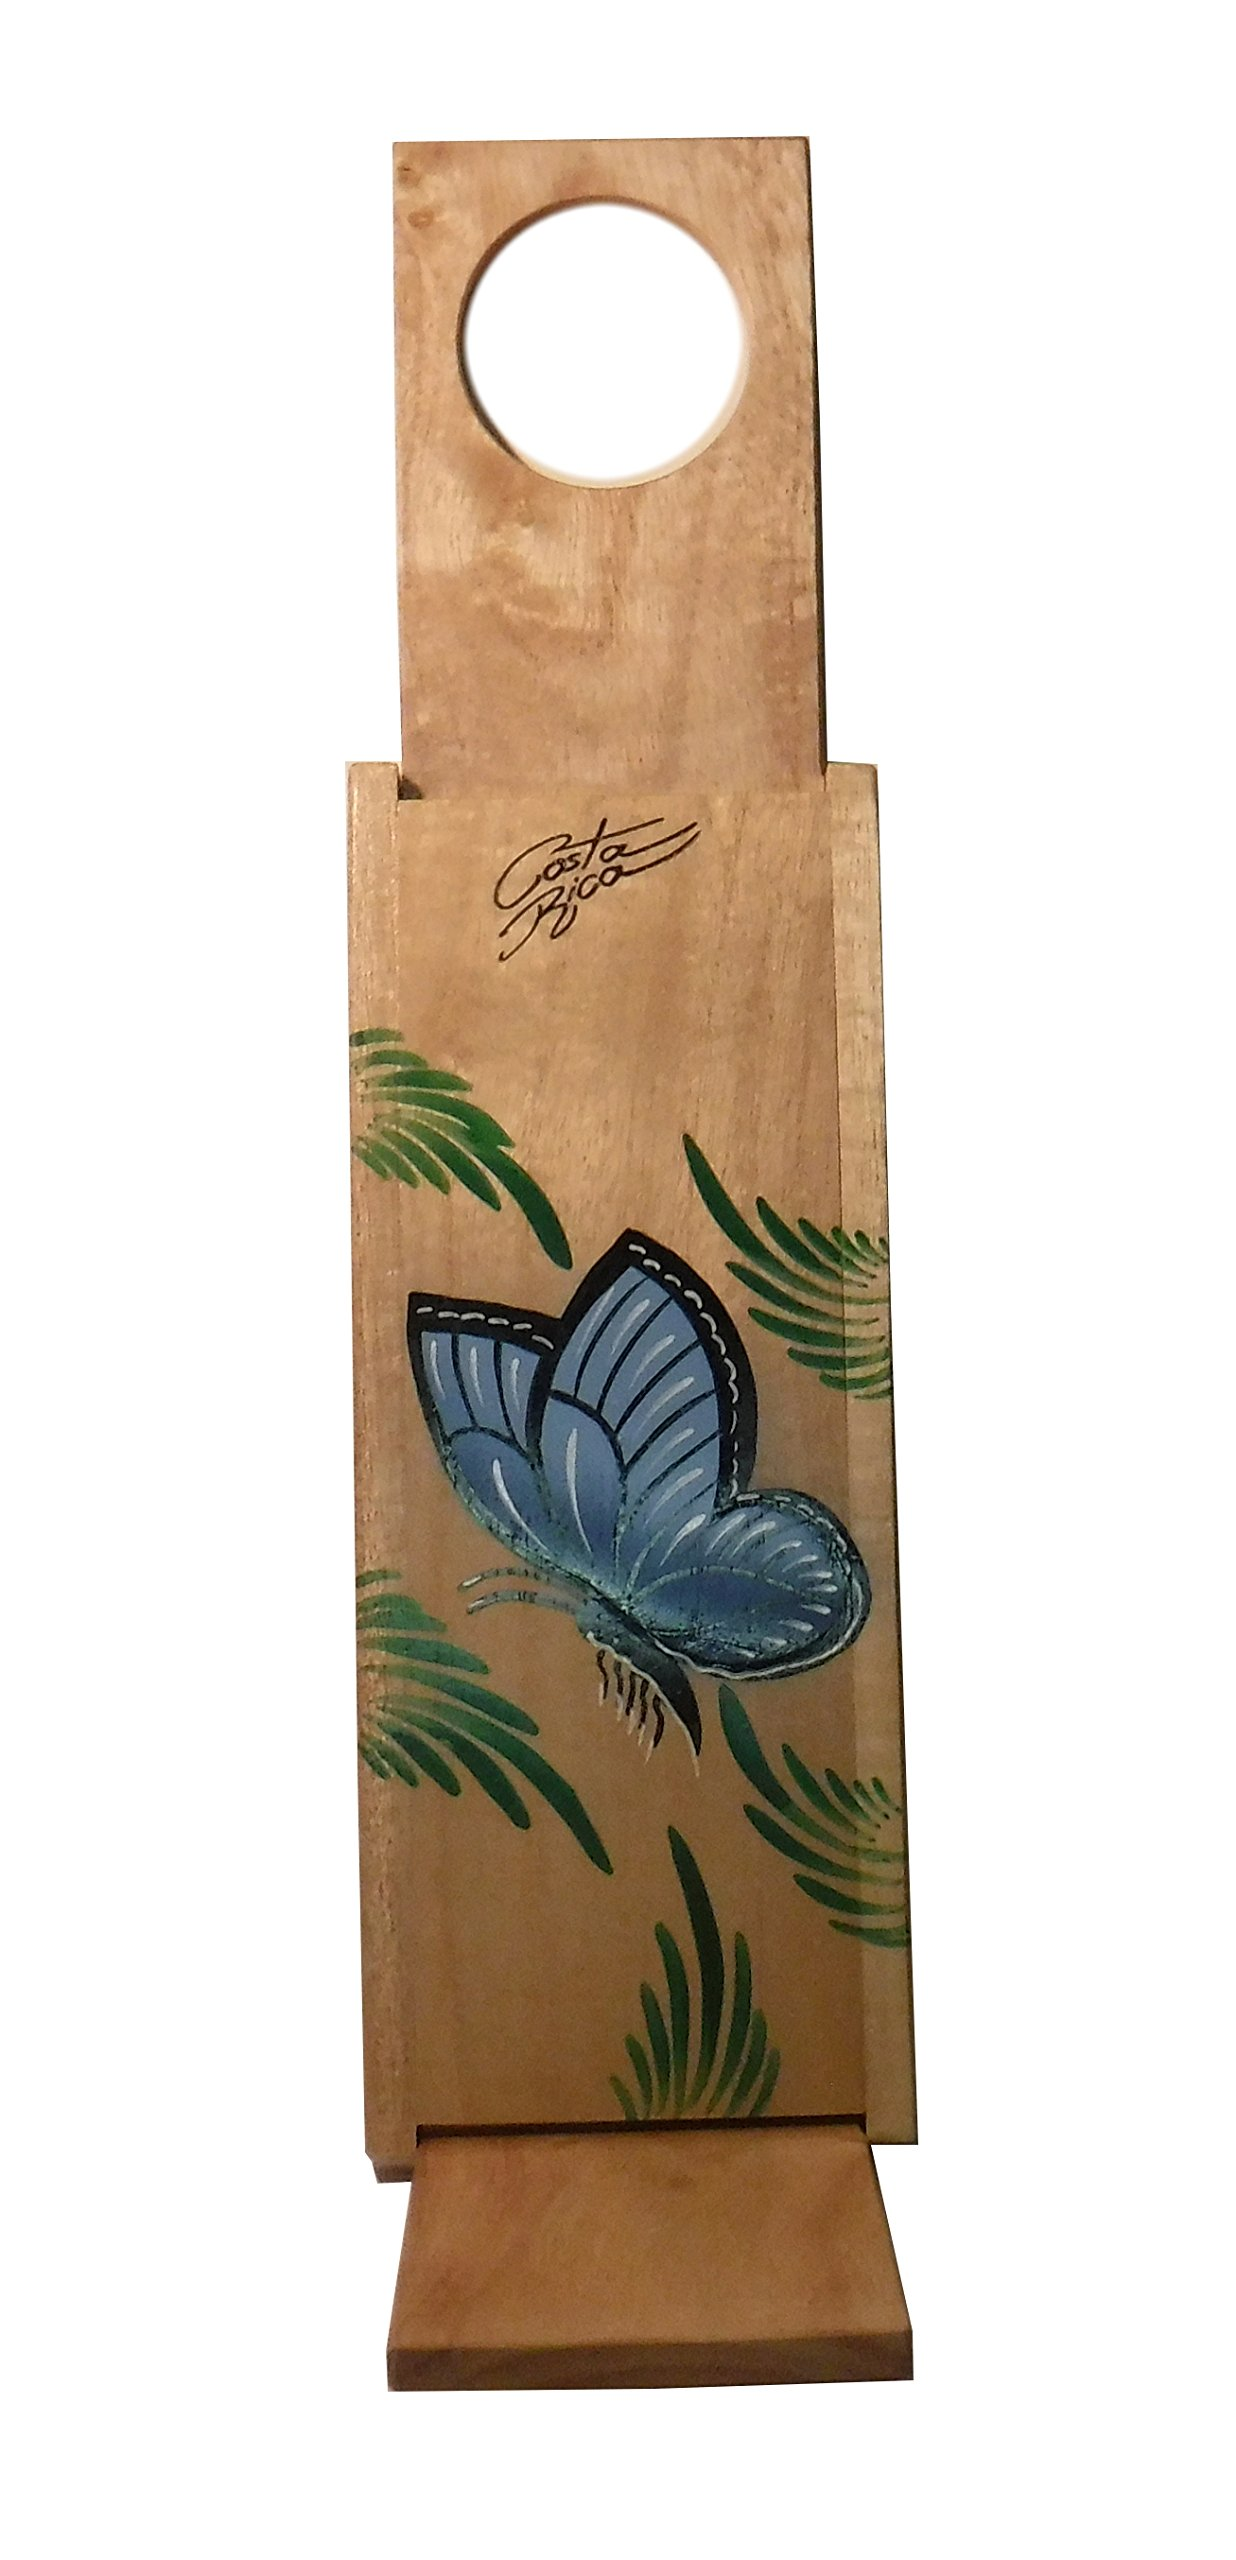 Chorreador,Costa Rican Handmade Portable Foldable Wooden Stand Coffee Maker,Included:1 Large Reusable Cloth Filter(Bolsa de Chorrear Cafe),Model:Blue Morpho Butterfly, Color:Light, Wood: Gmelina by Love Gourmet Coffee (Image #2)